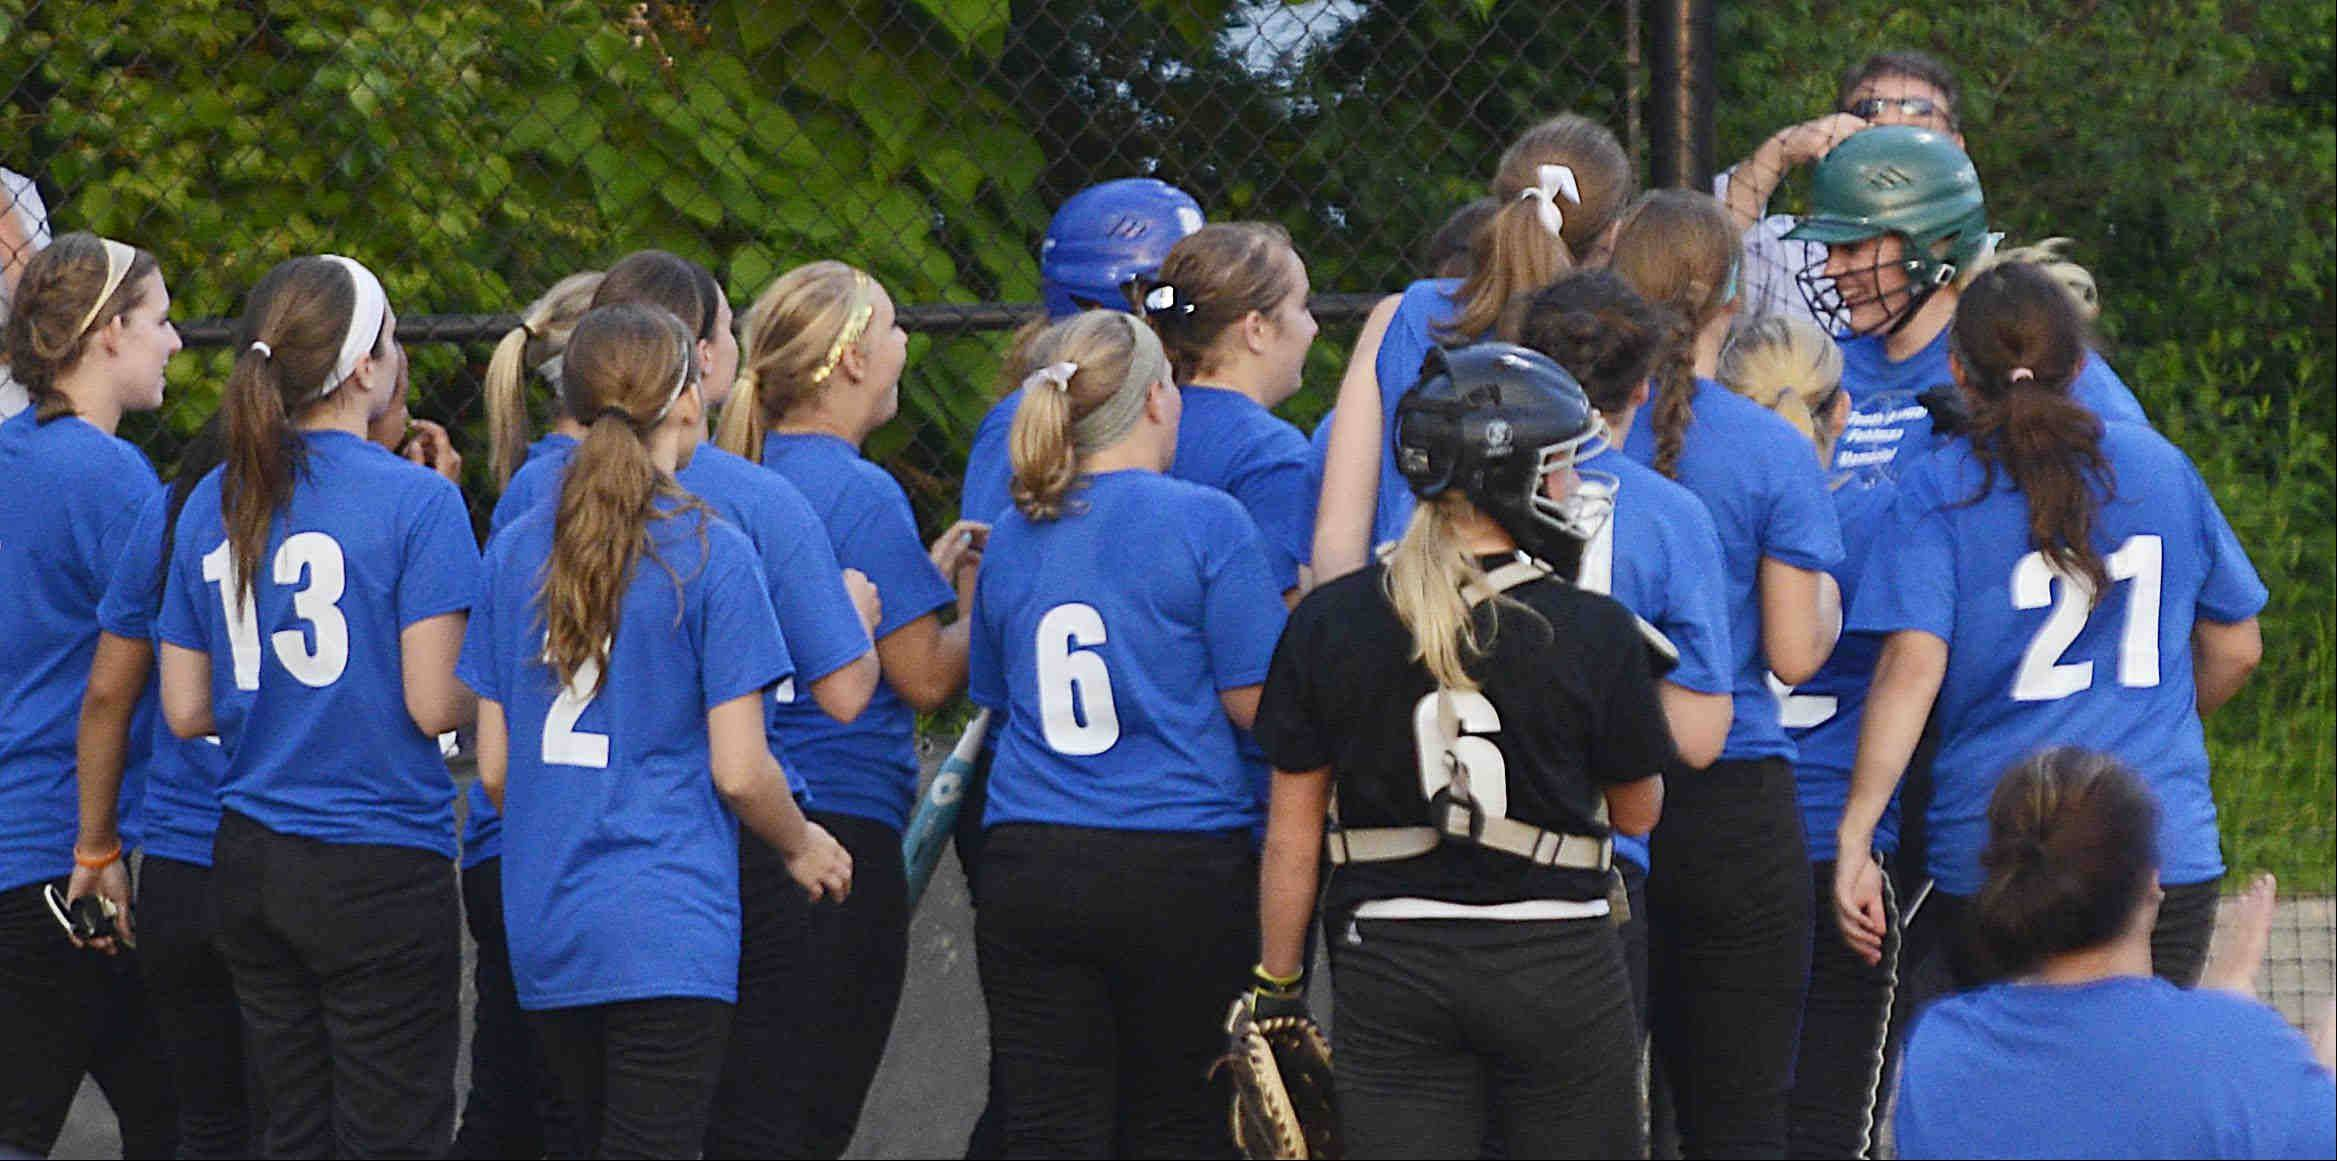 West All Star pitcher Kirsten Stevens of Prairie Ridge High School is greeted at home plate after her eighth inning home run Monday during the Tenth Annual Fehlman Memorial Senior All-Star softball game at Judson University.